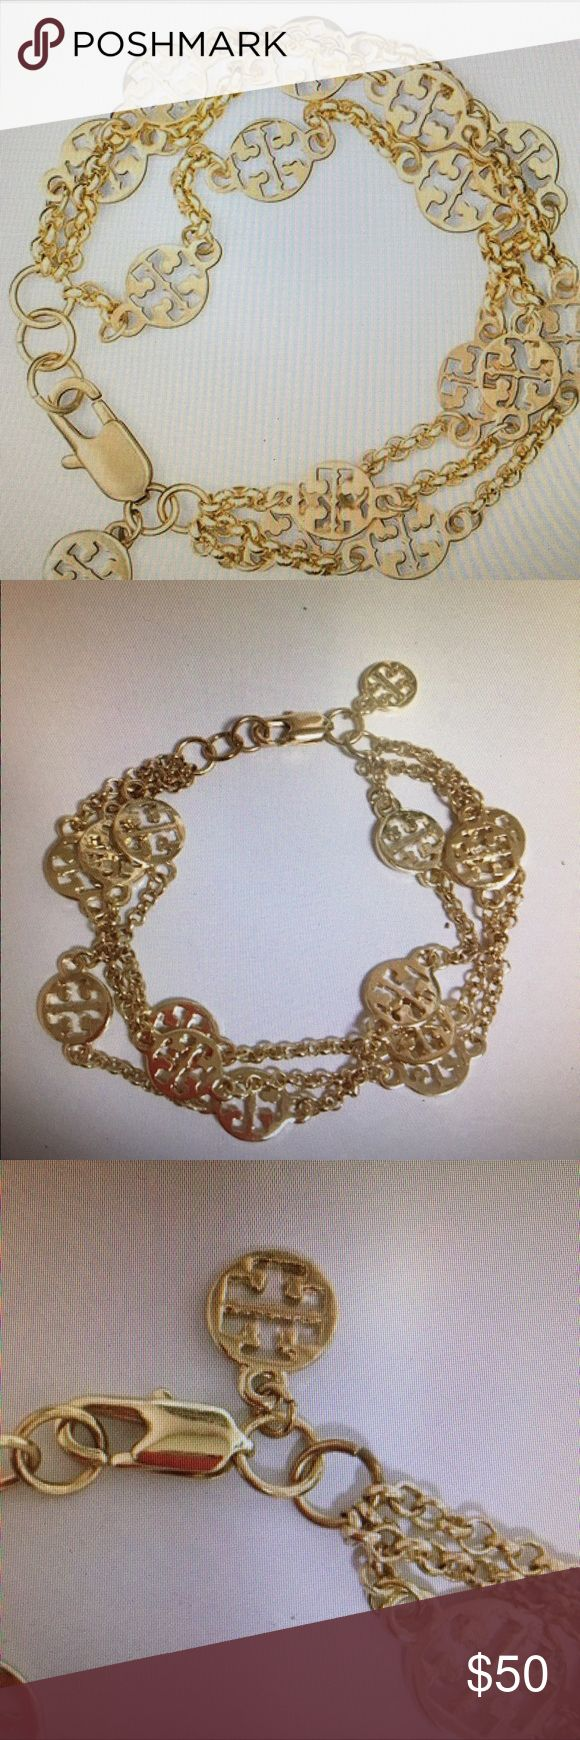 Tory Burch Multi Strand Logo Bracelet Got as a gift but already owned one this beautiful shiny gold bracelet Tory Burch has the iconic logo throughout measures around 7 inches Tory Burch Jewelry Bracelets